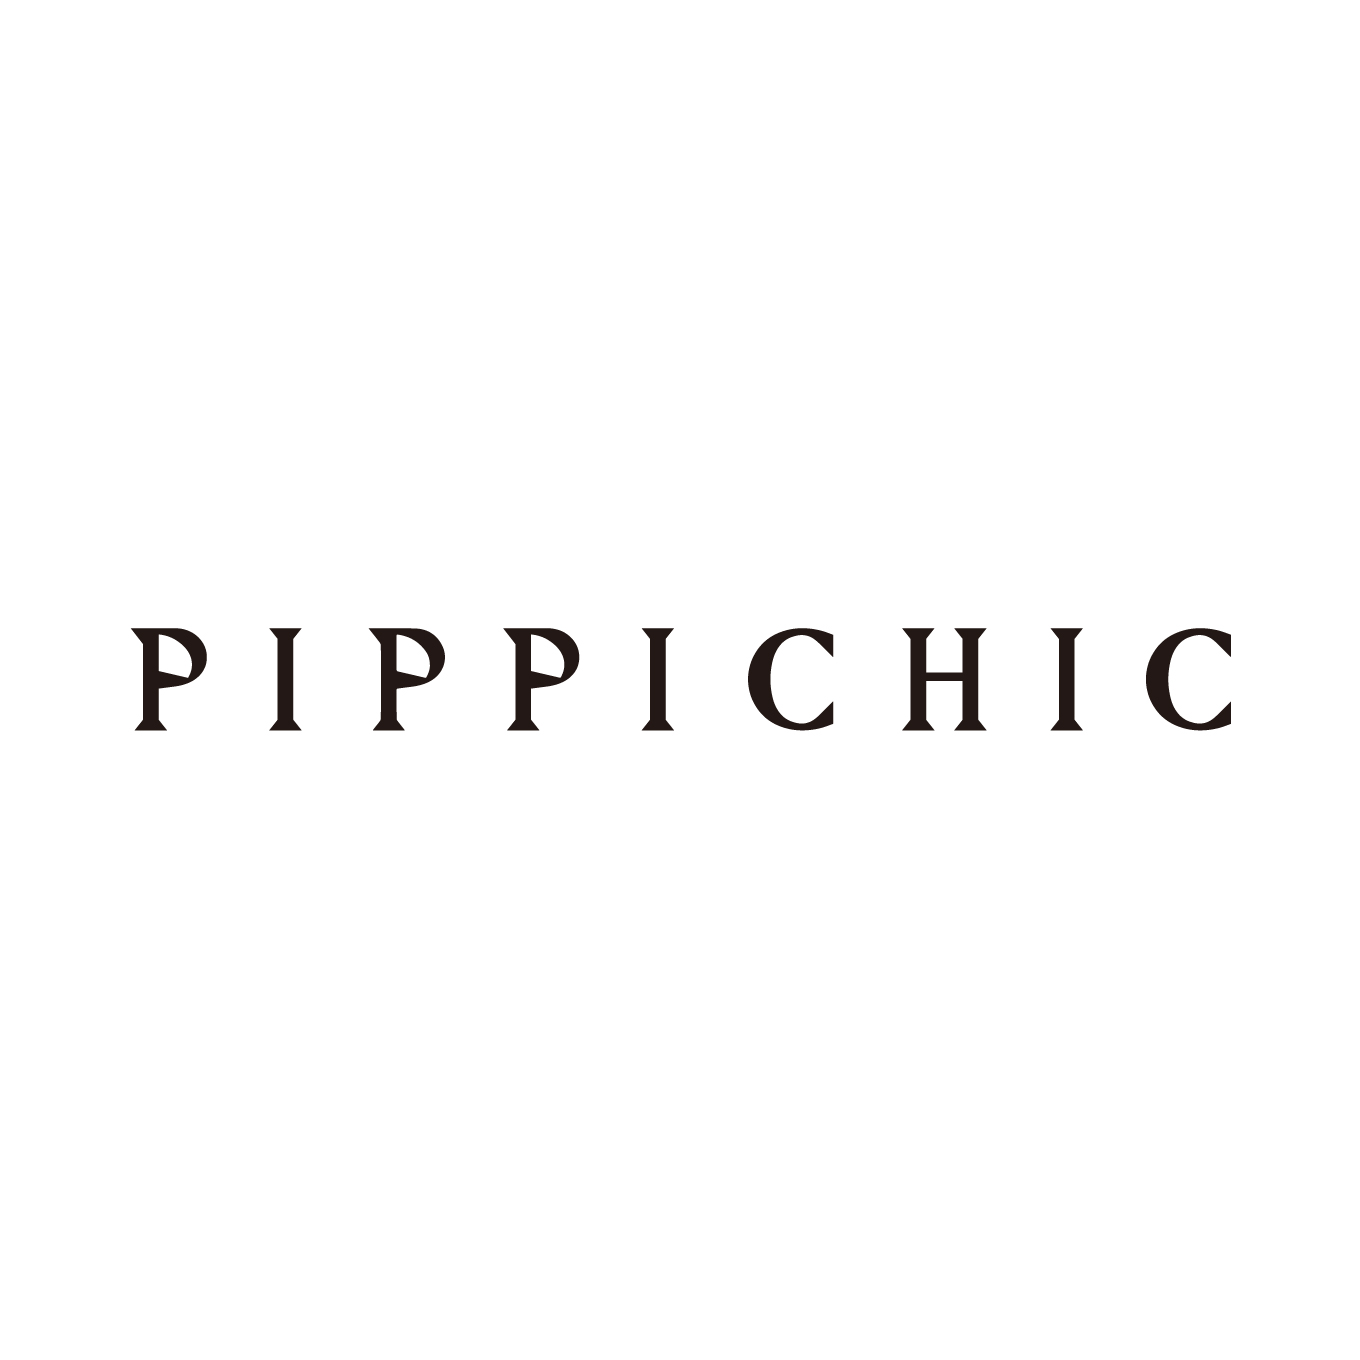 PIPPICHIC New Logo design